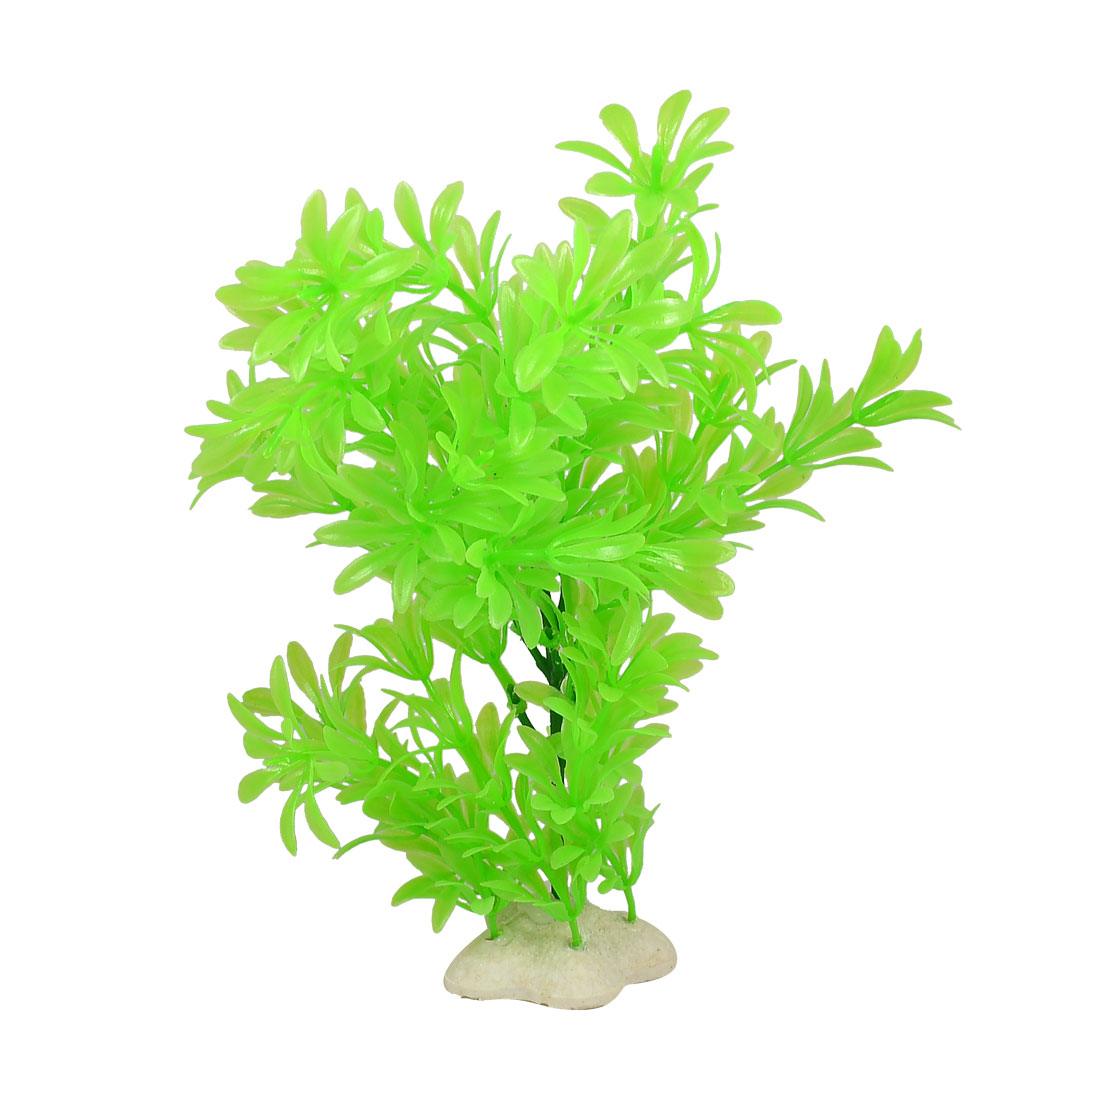 "Fish Tank Decoration 10"" Height Light Green Leaf Plastic Aquatic Plant"